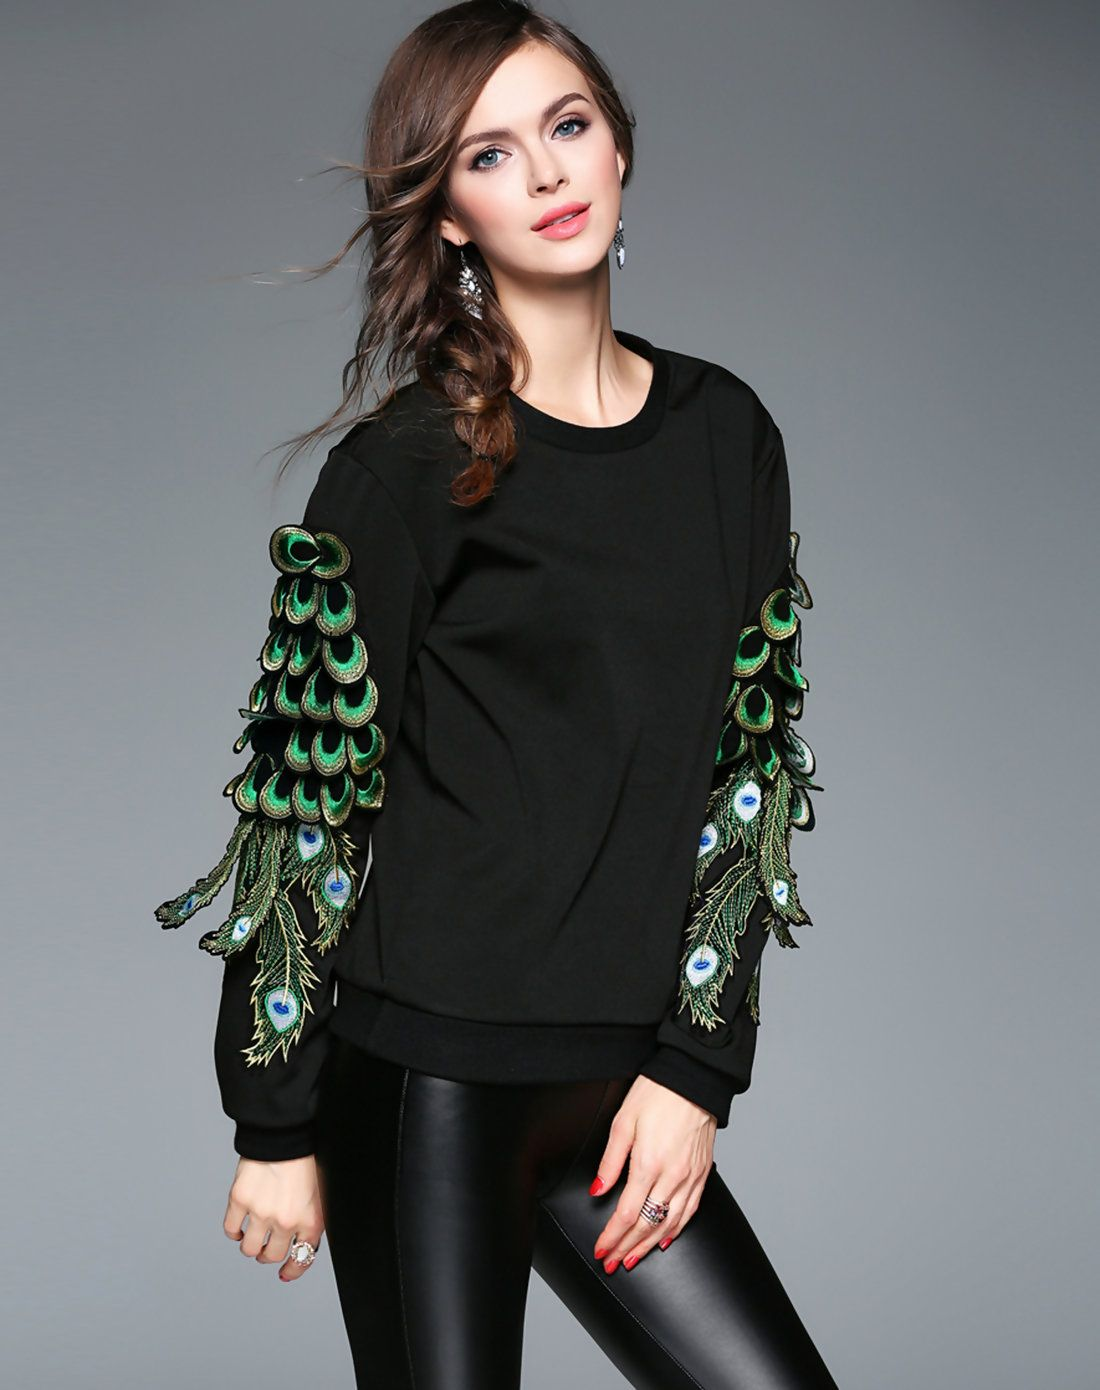 Black Crew Neck Long Sleeve Sweatshirt  AdoreWecom  Designer